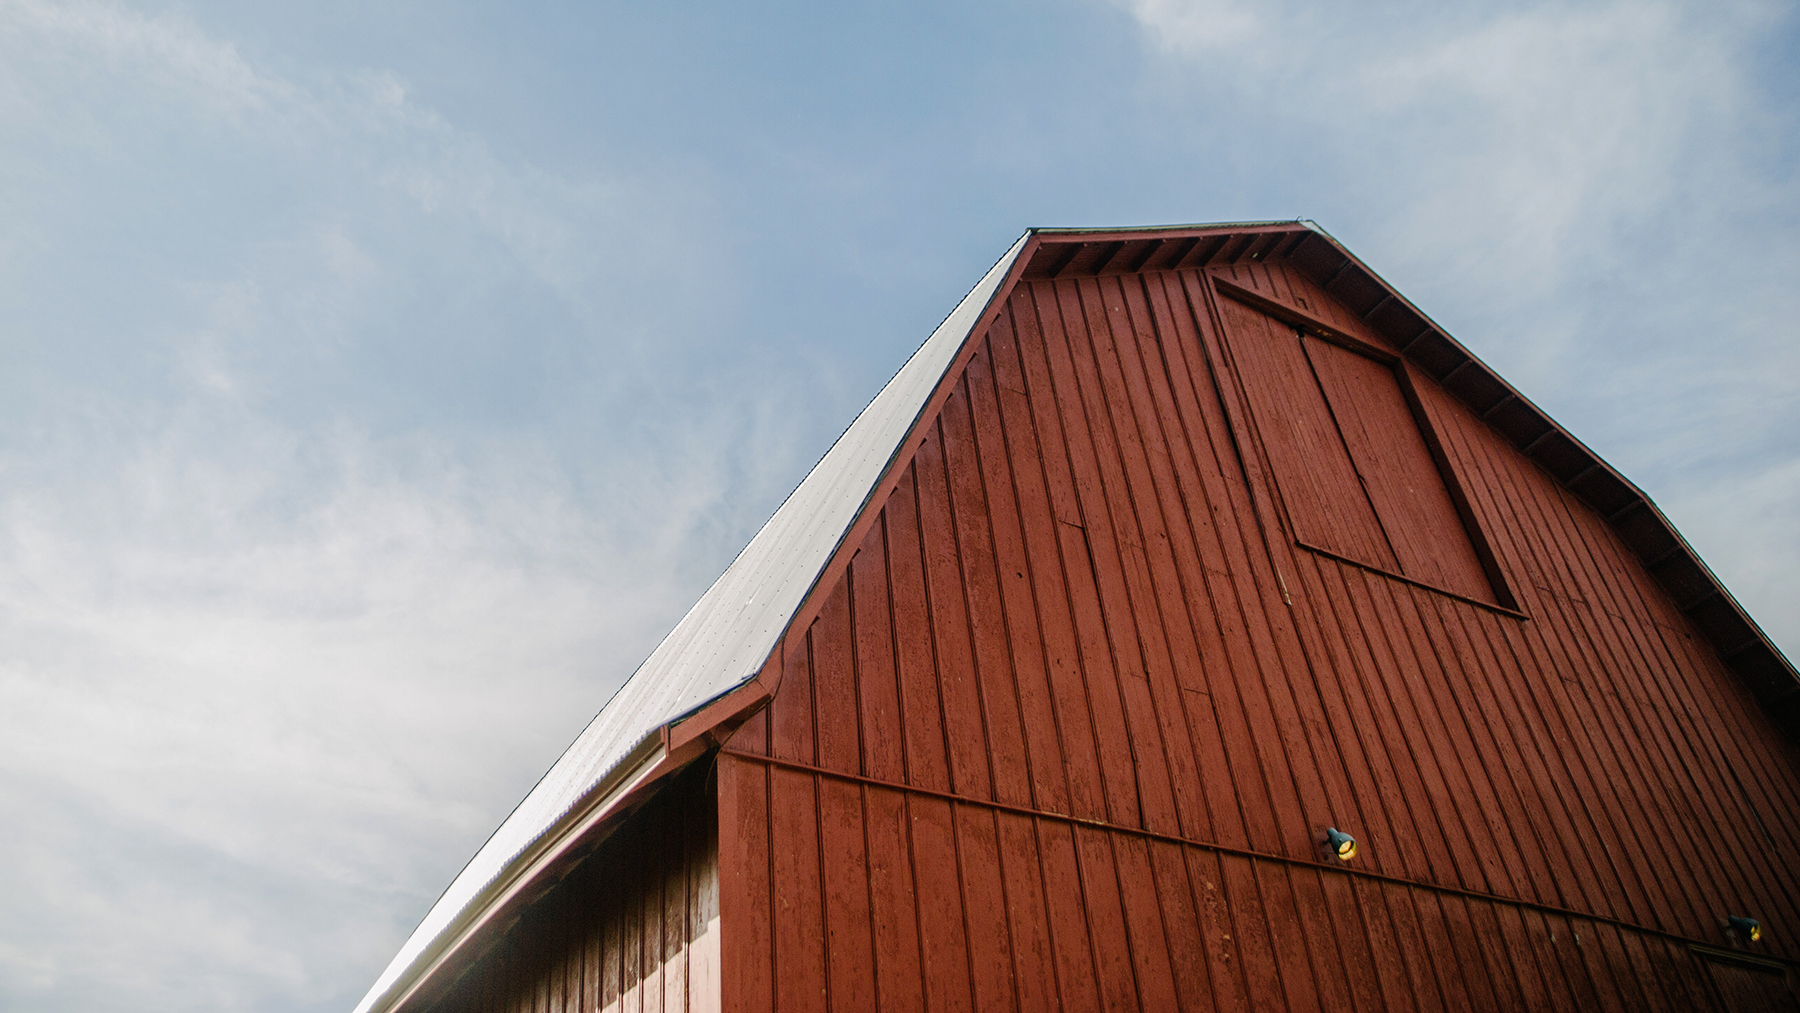 Allerton's restored barn. Photo by Kara Kamienski Photography